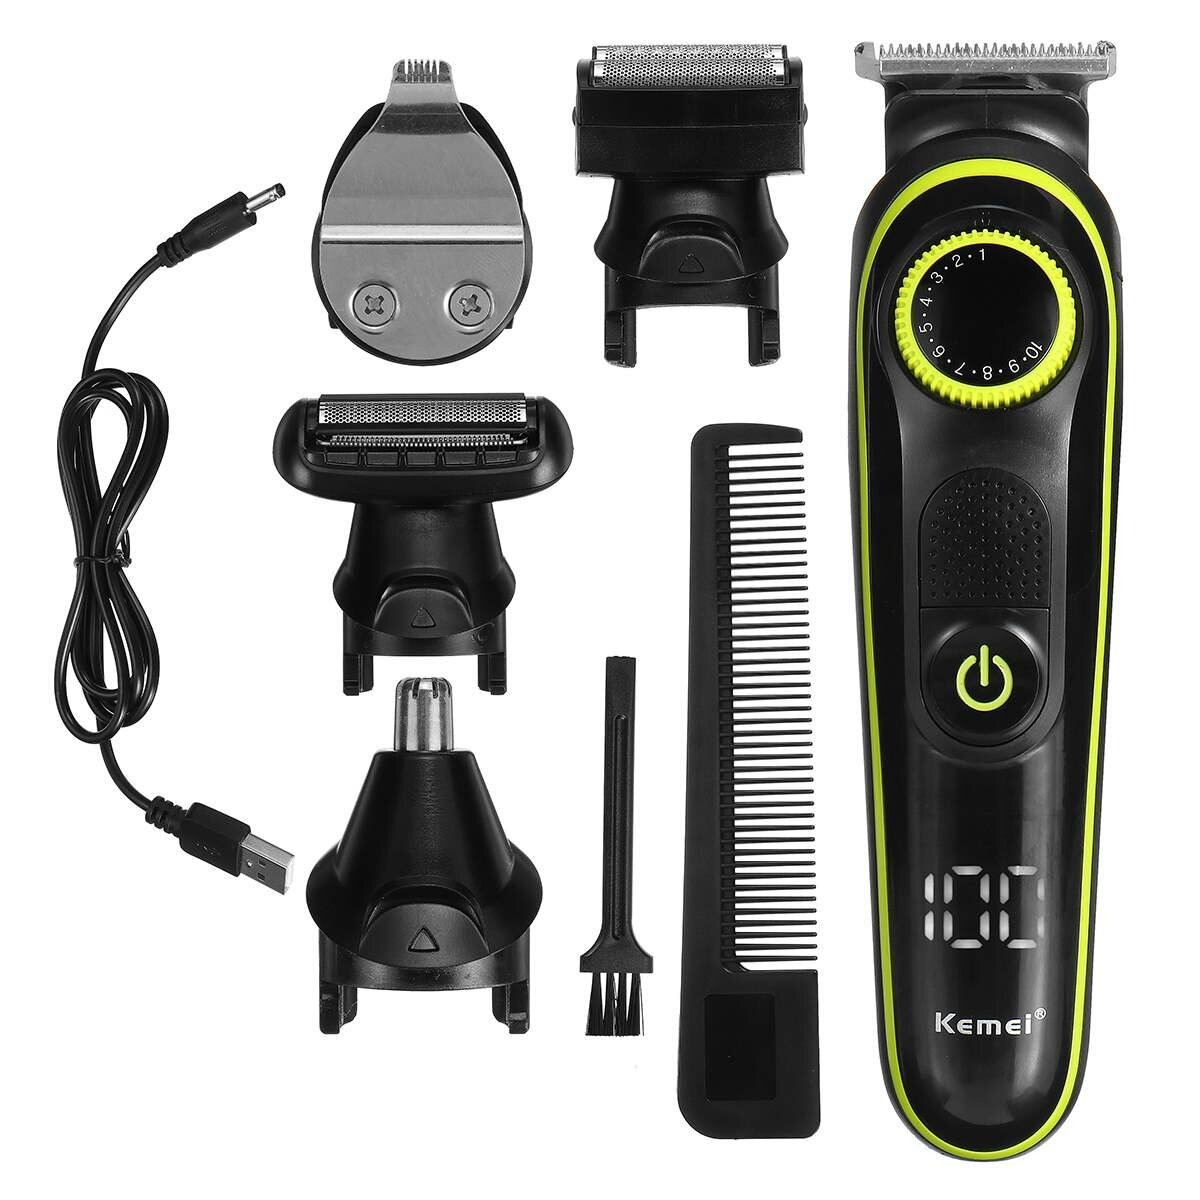 5 In 1 Hair Trimmer Set LED Display Electric Hair Clippers Multifunctional USB Rechargeable Shaver